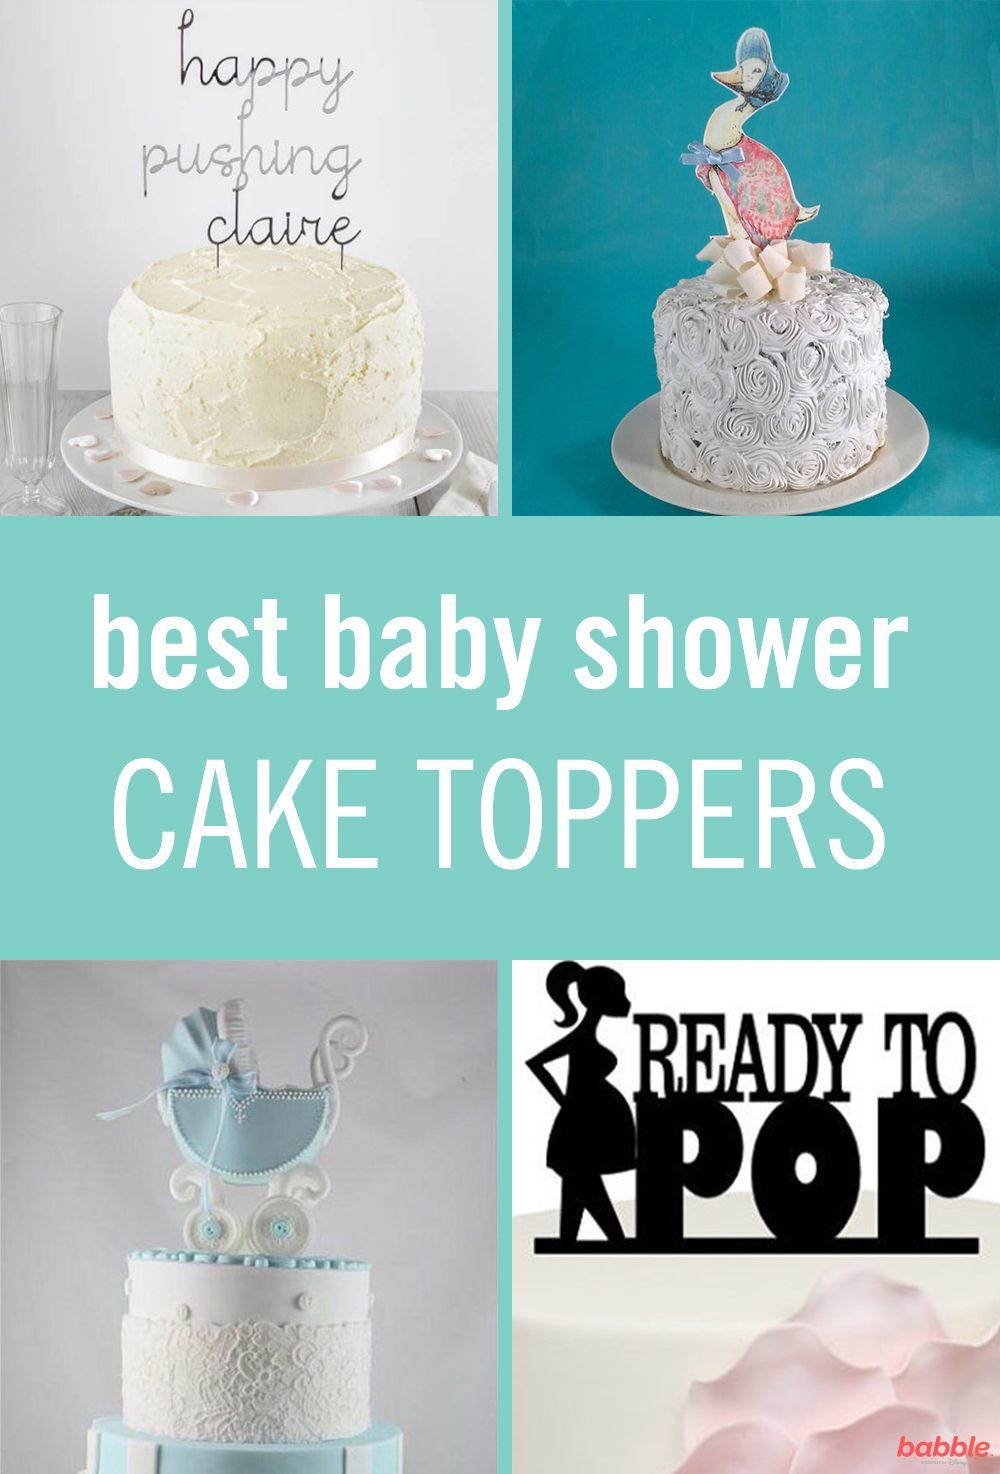 Disney Family Recipes Crafts And Activities Baby Shower Cake Topper Baby Shower Cakes For Boys Baby Shower Cakes